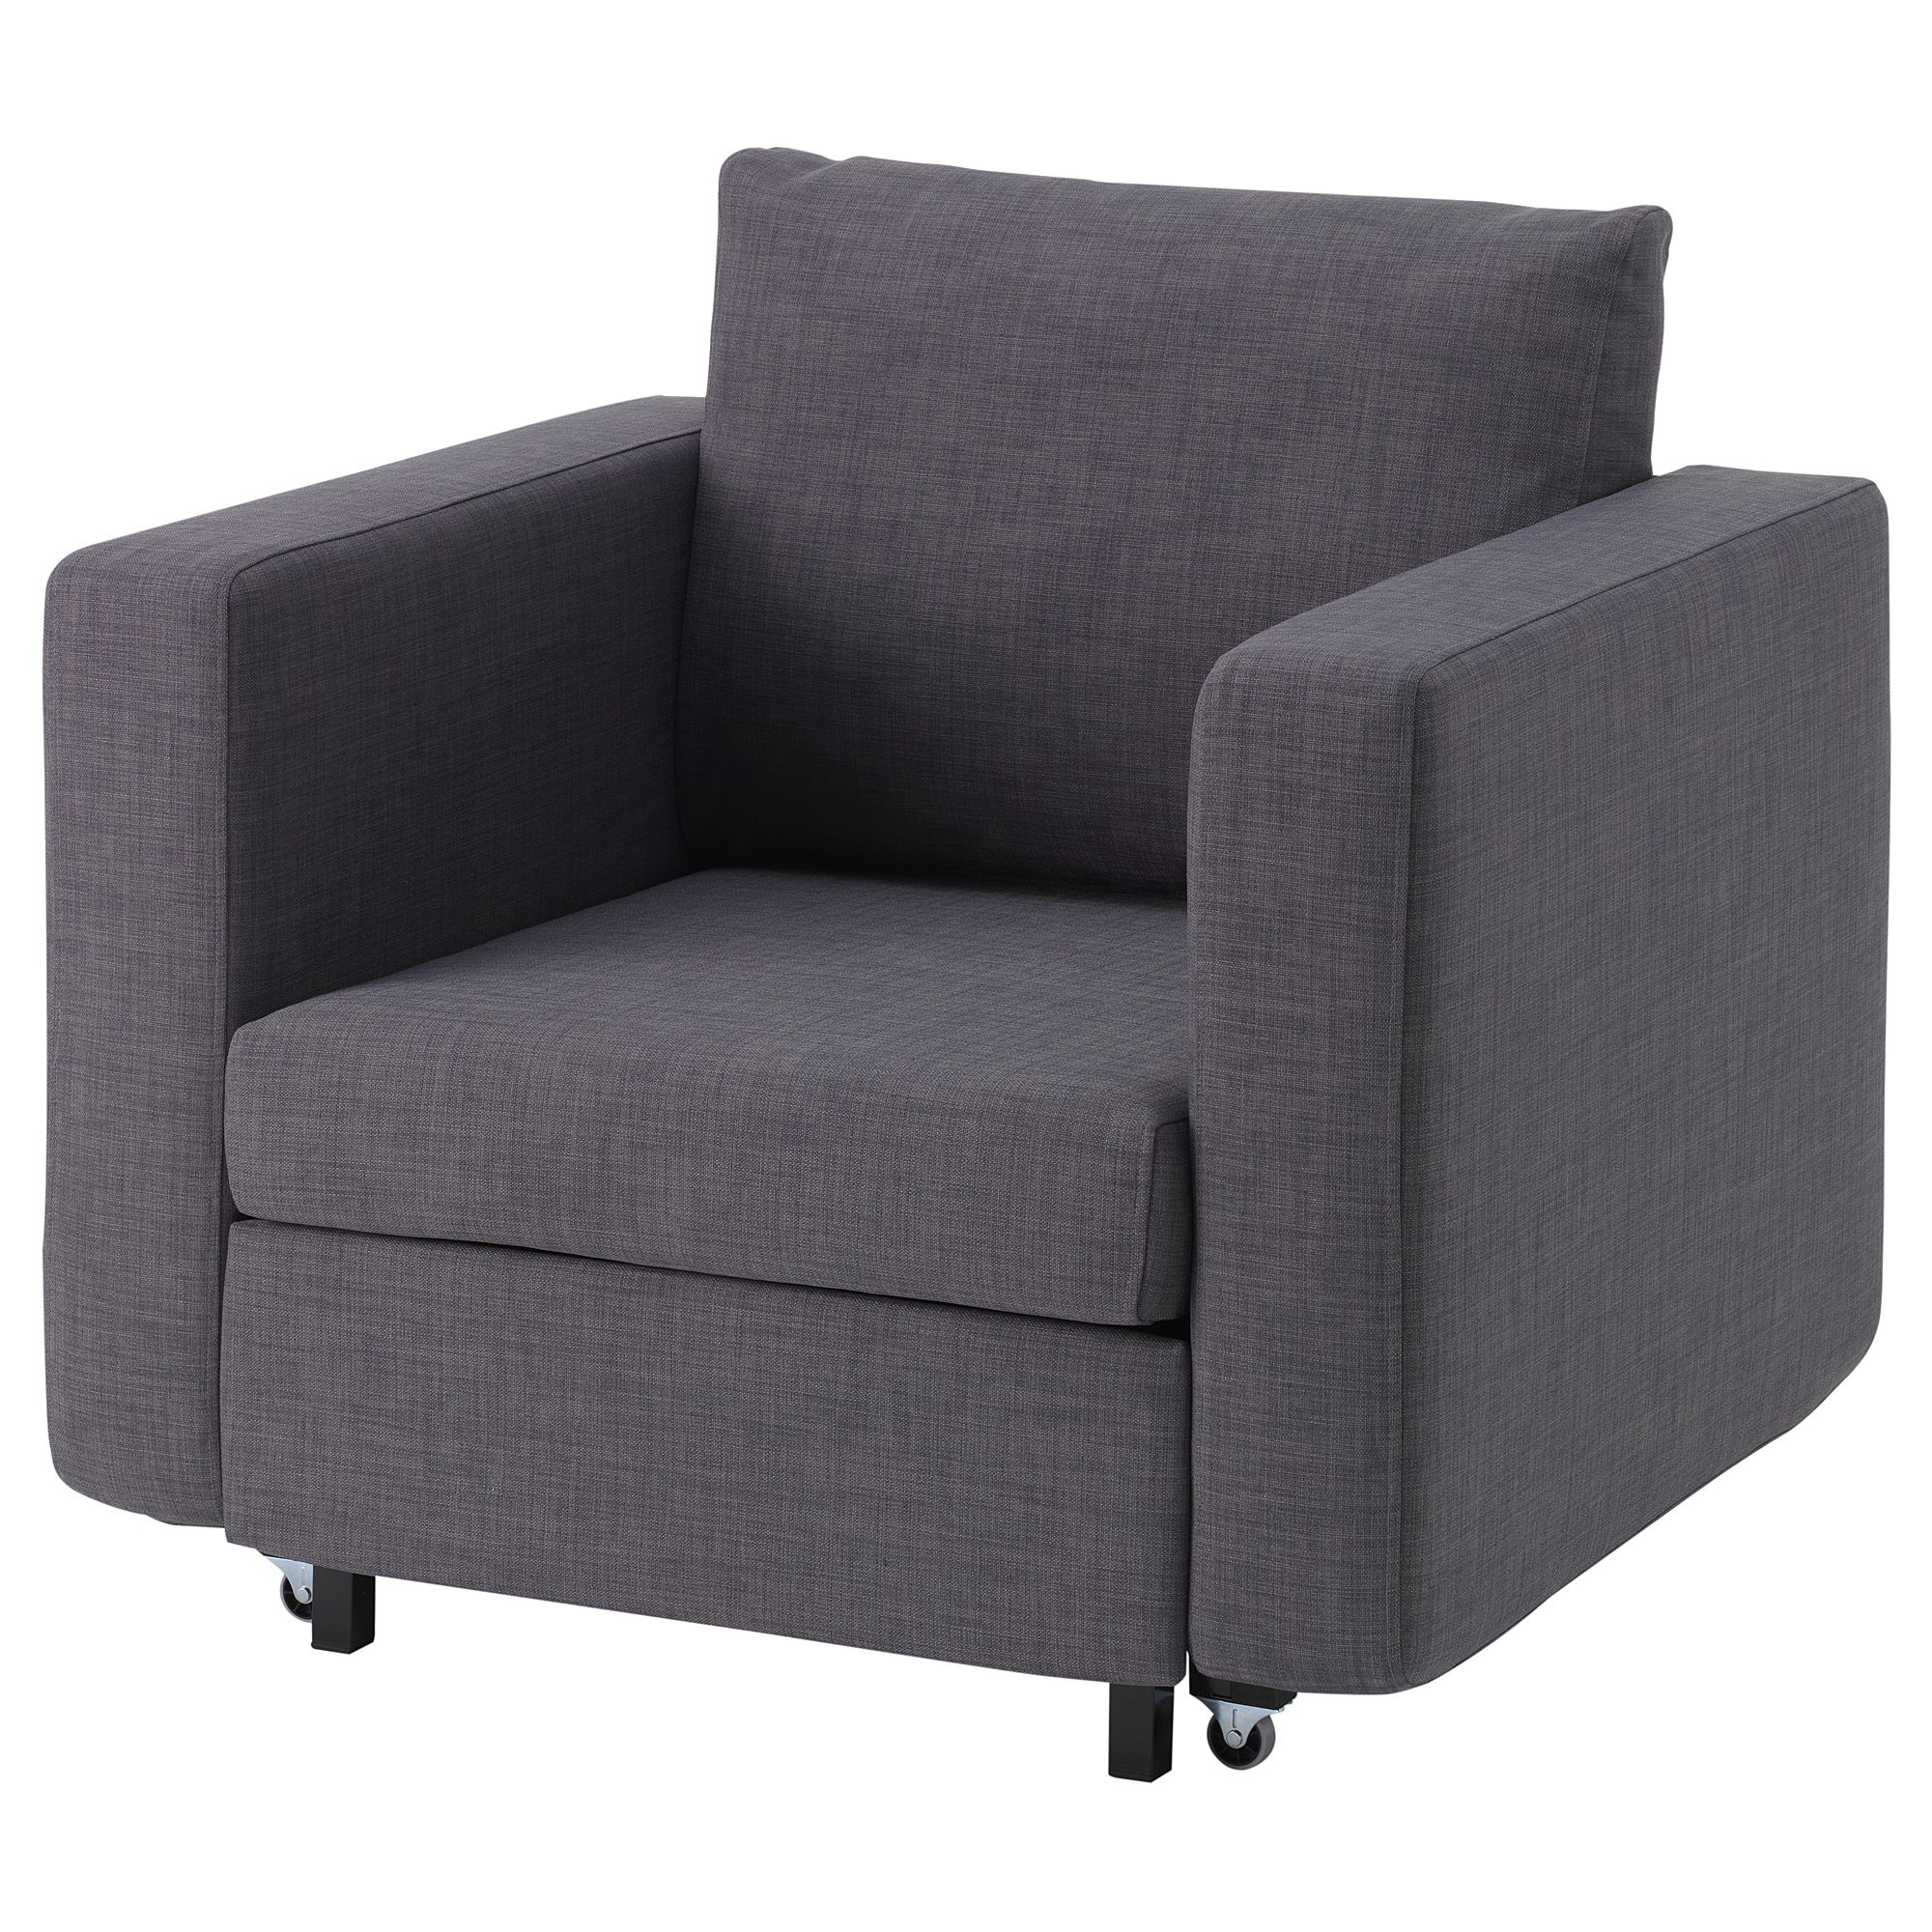 Furniture Home Furnishings Find Your Inspiration Armchair Bed Chair Bed Ikea Recliner